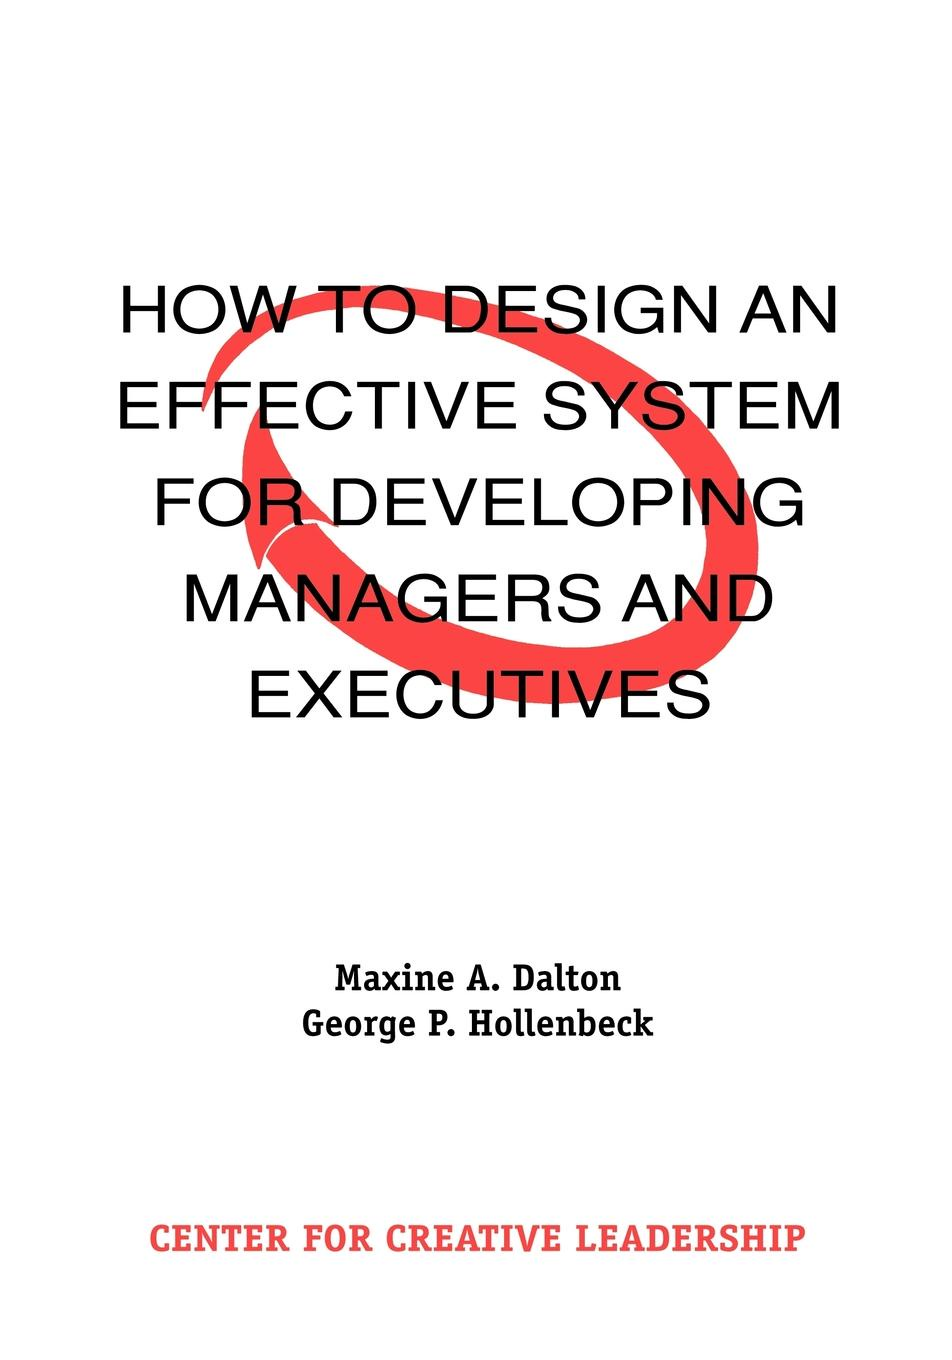 Maxine A. Dalton, George P. Hollenbeck How to Design an Effective System for Developing Managers and Executives виброхвосты lucky john tioga цвет желтый красный черный длина 51 мм 10 шт